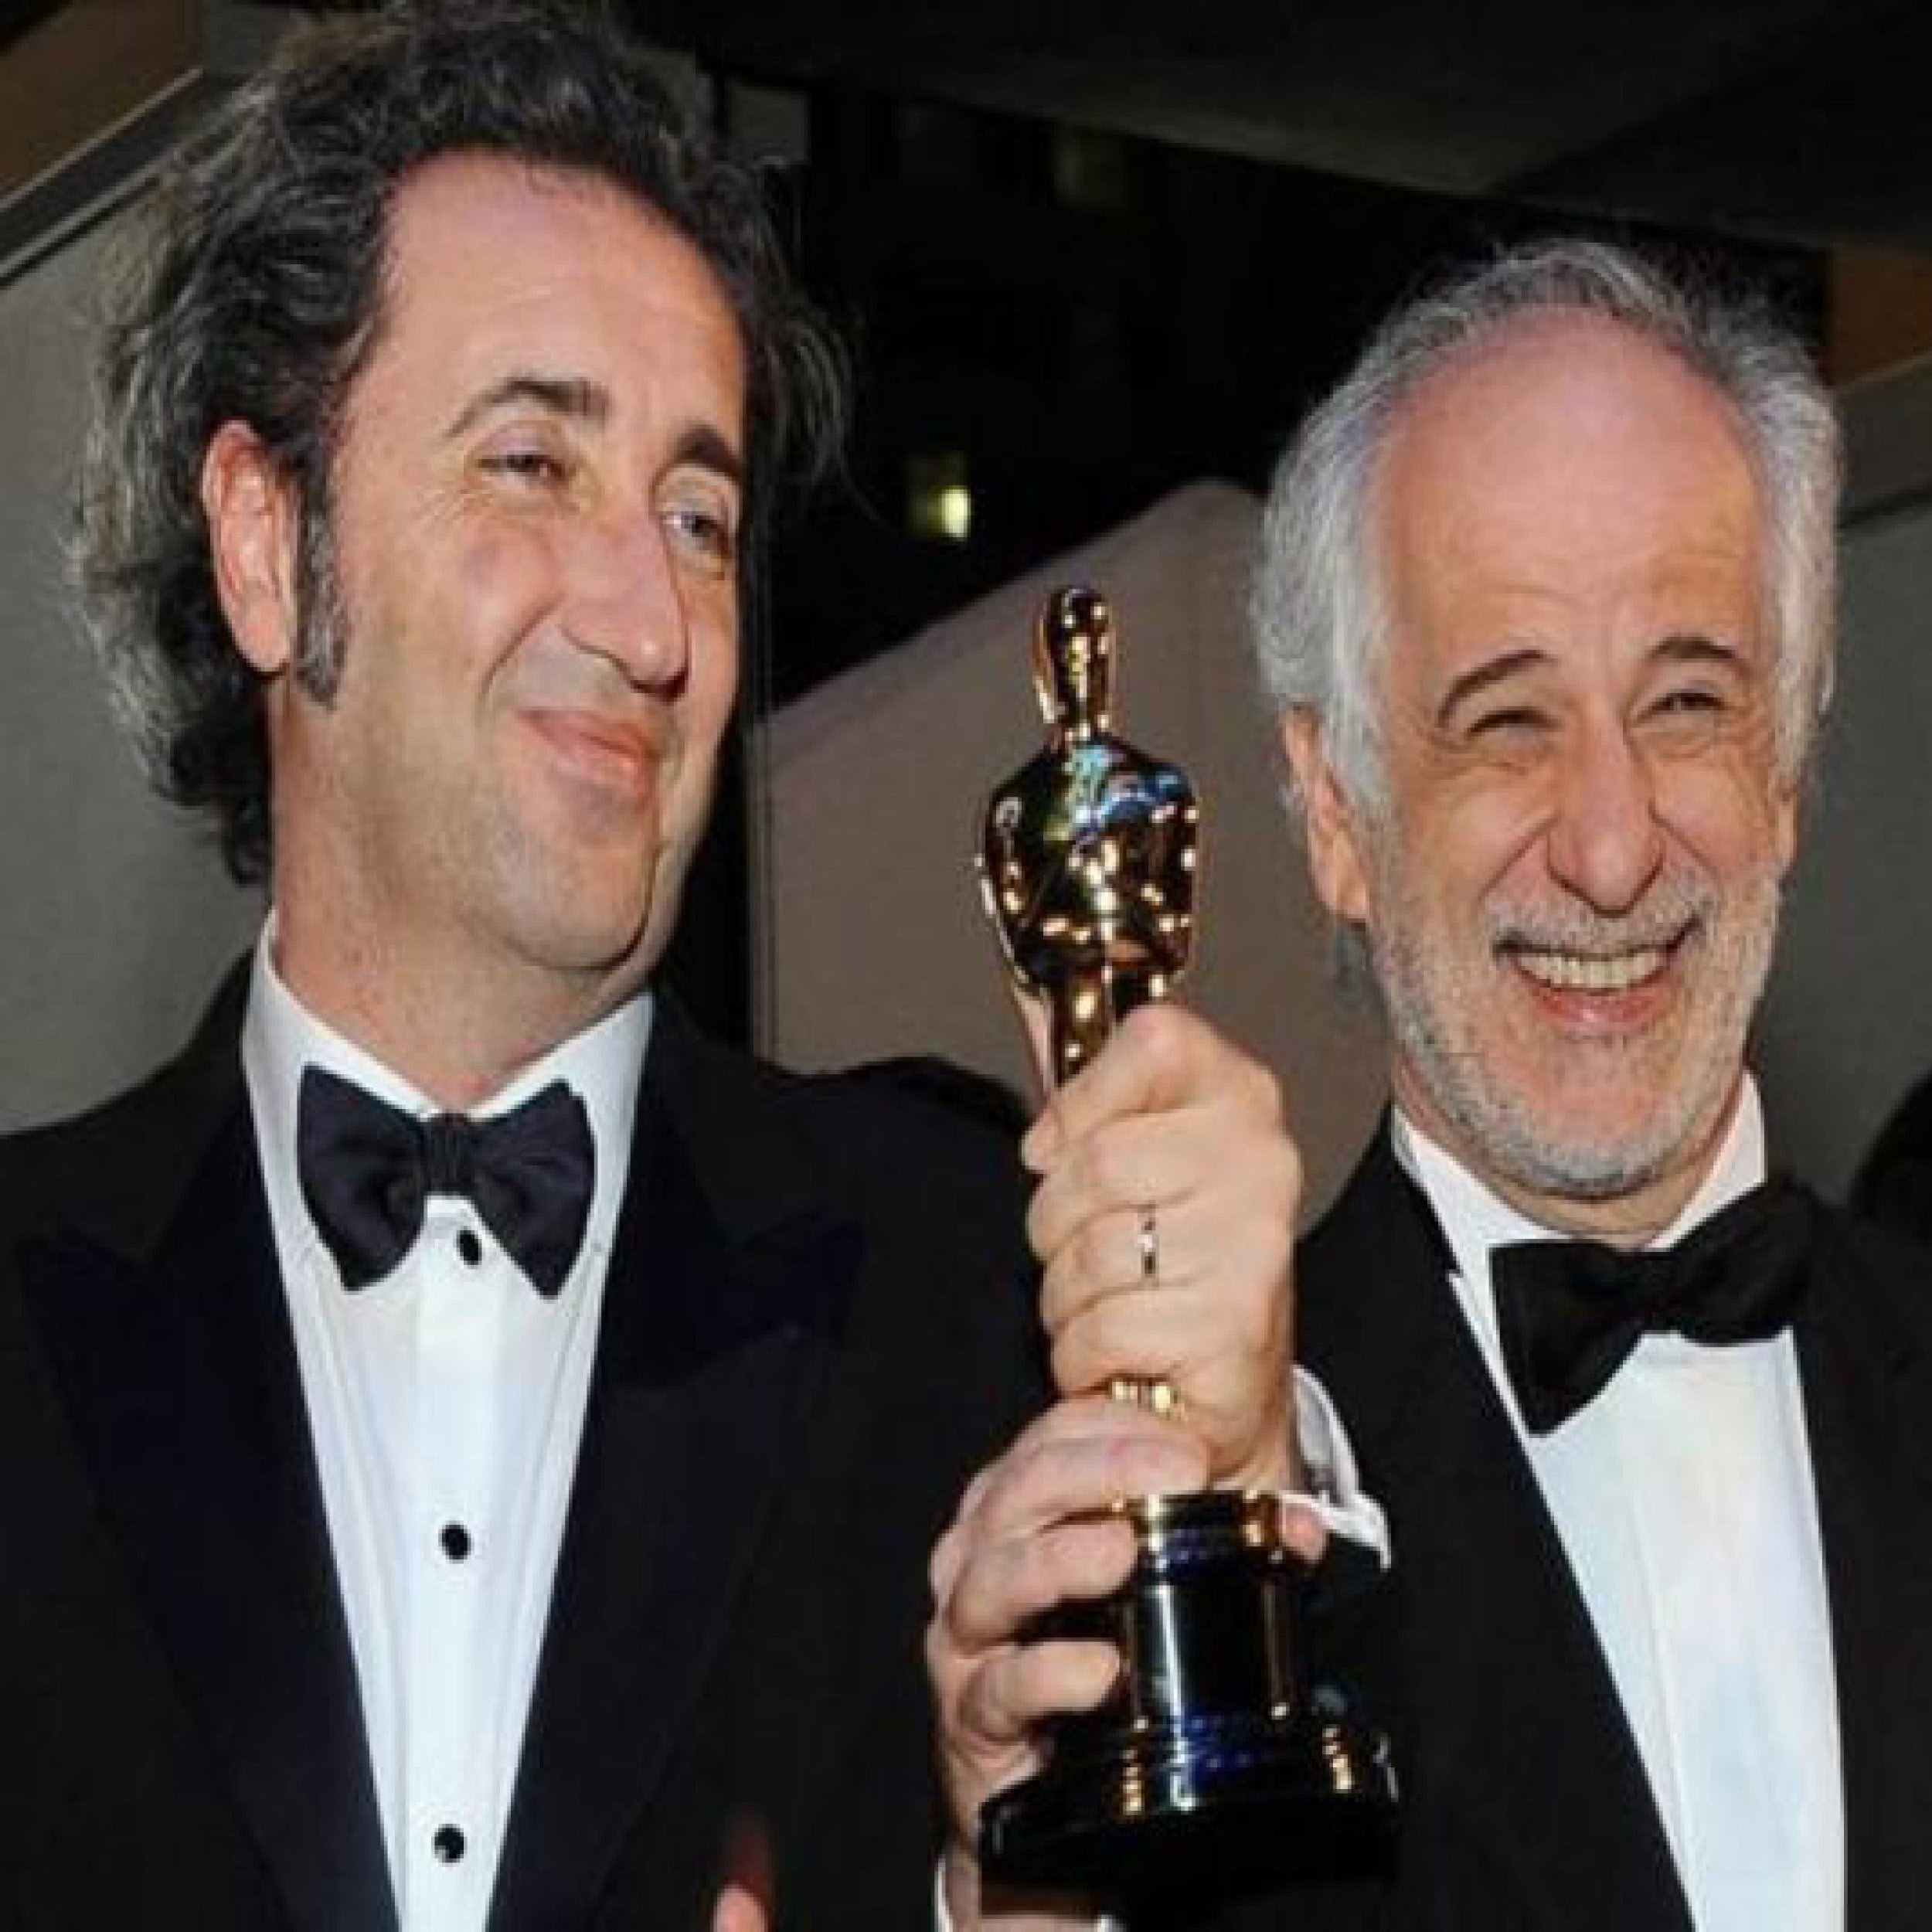 Podcast: Paolo Sorrentino